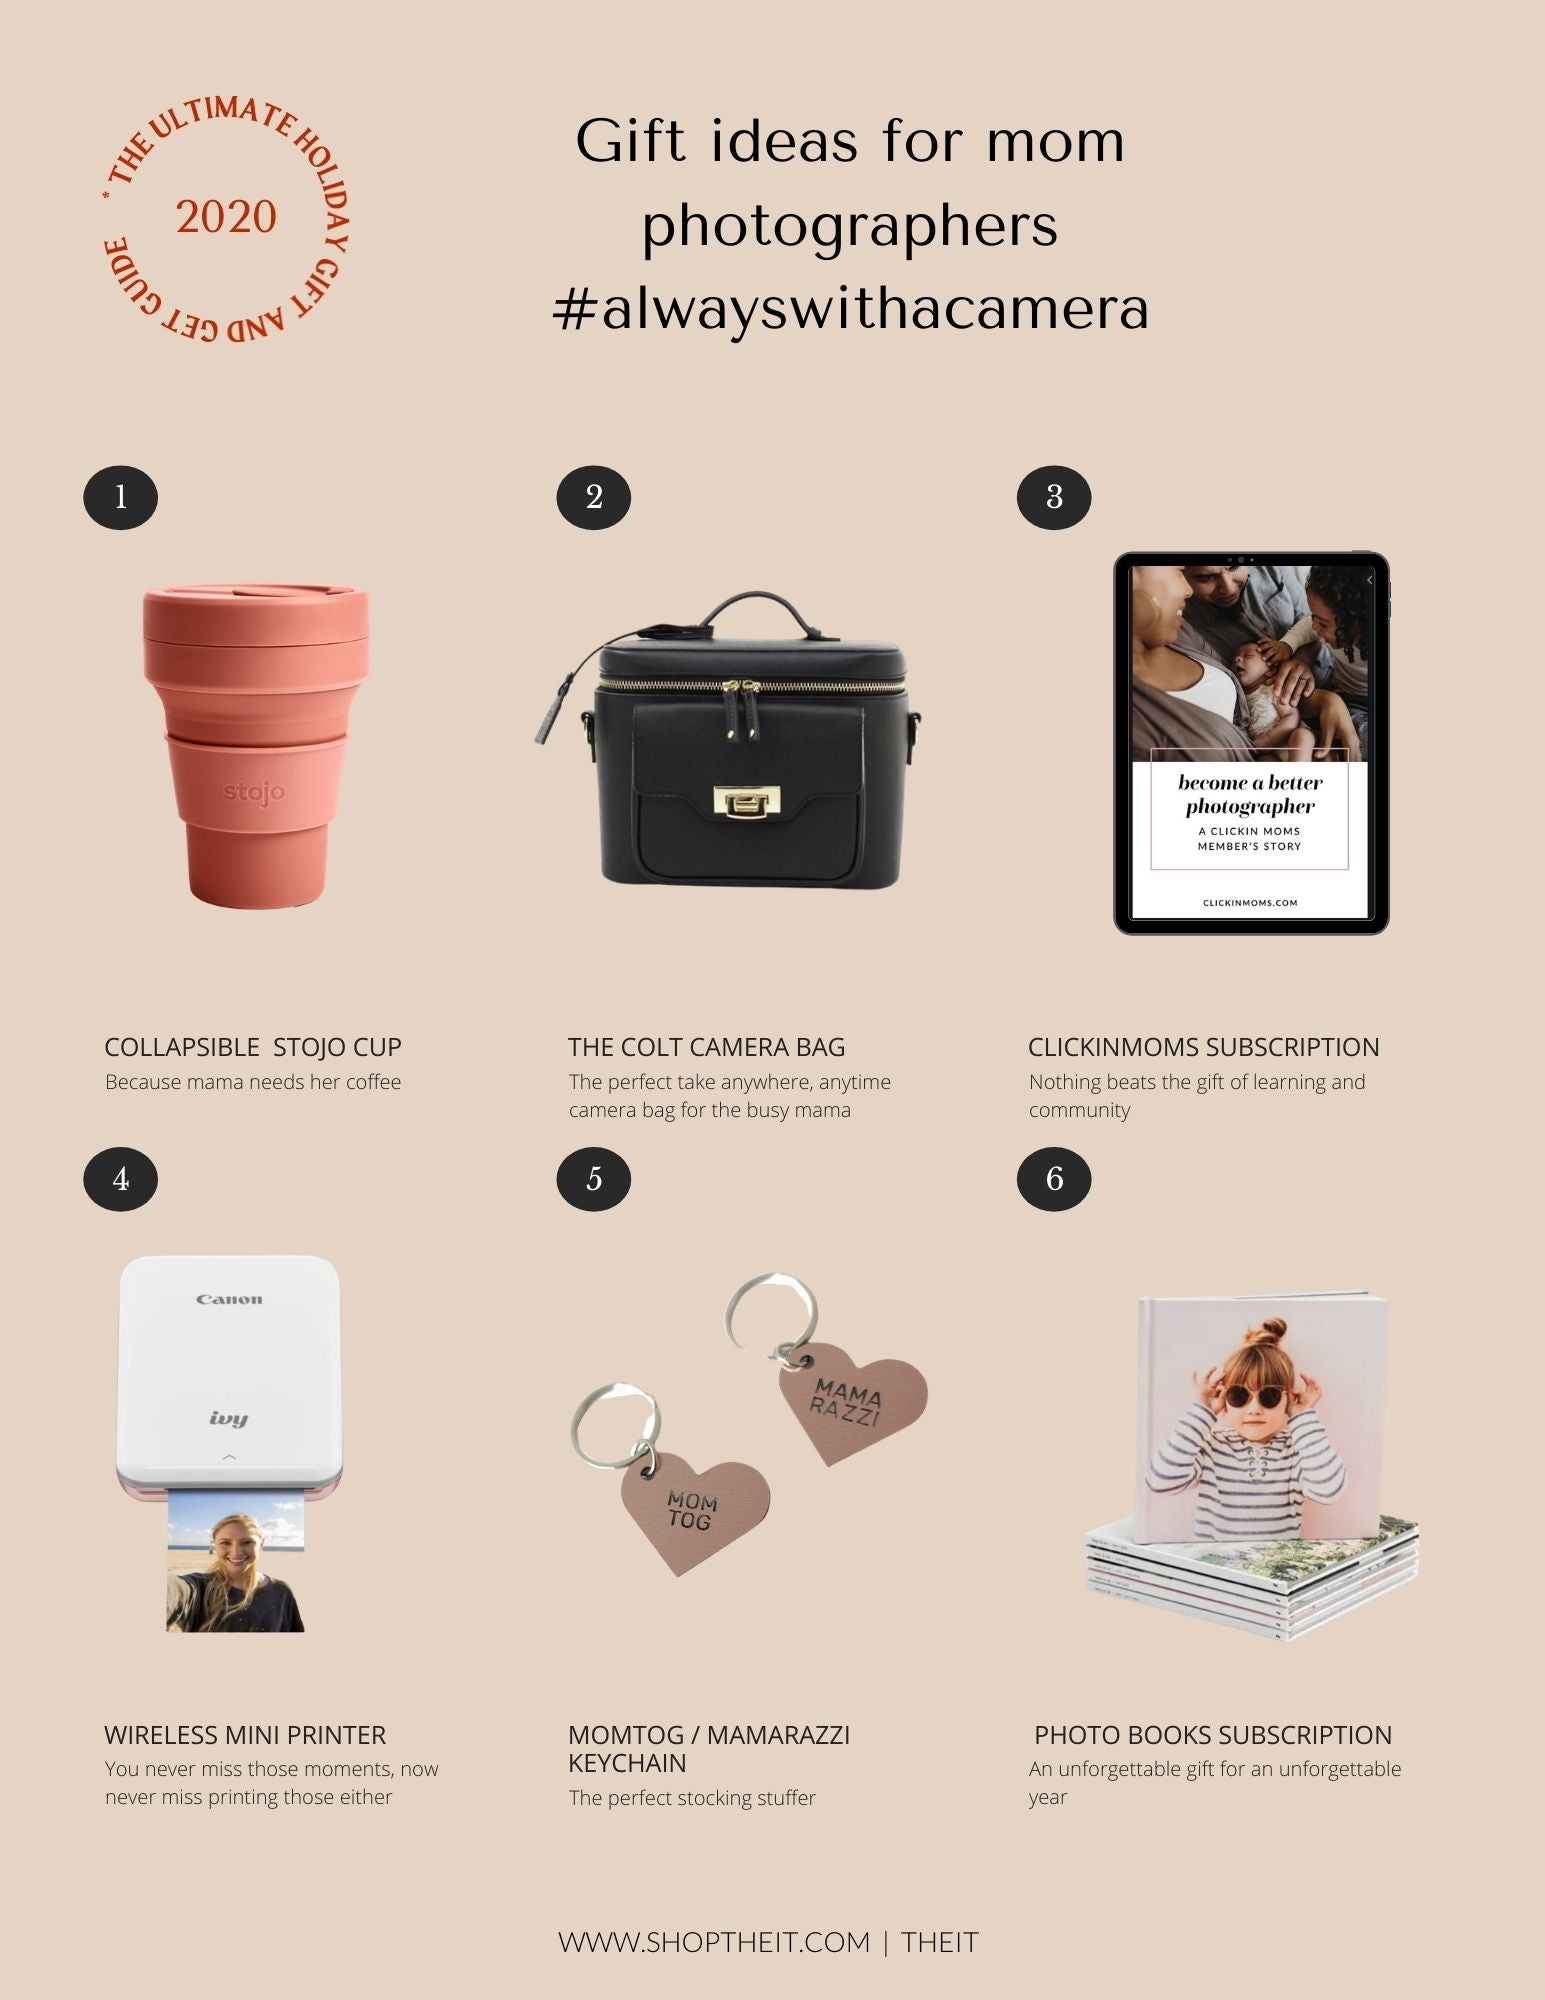 THEIT 2020 Holiday Gift Guide for Mom Photographers